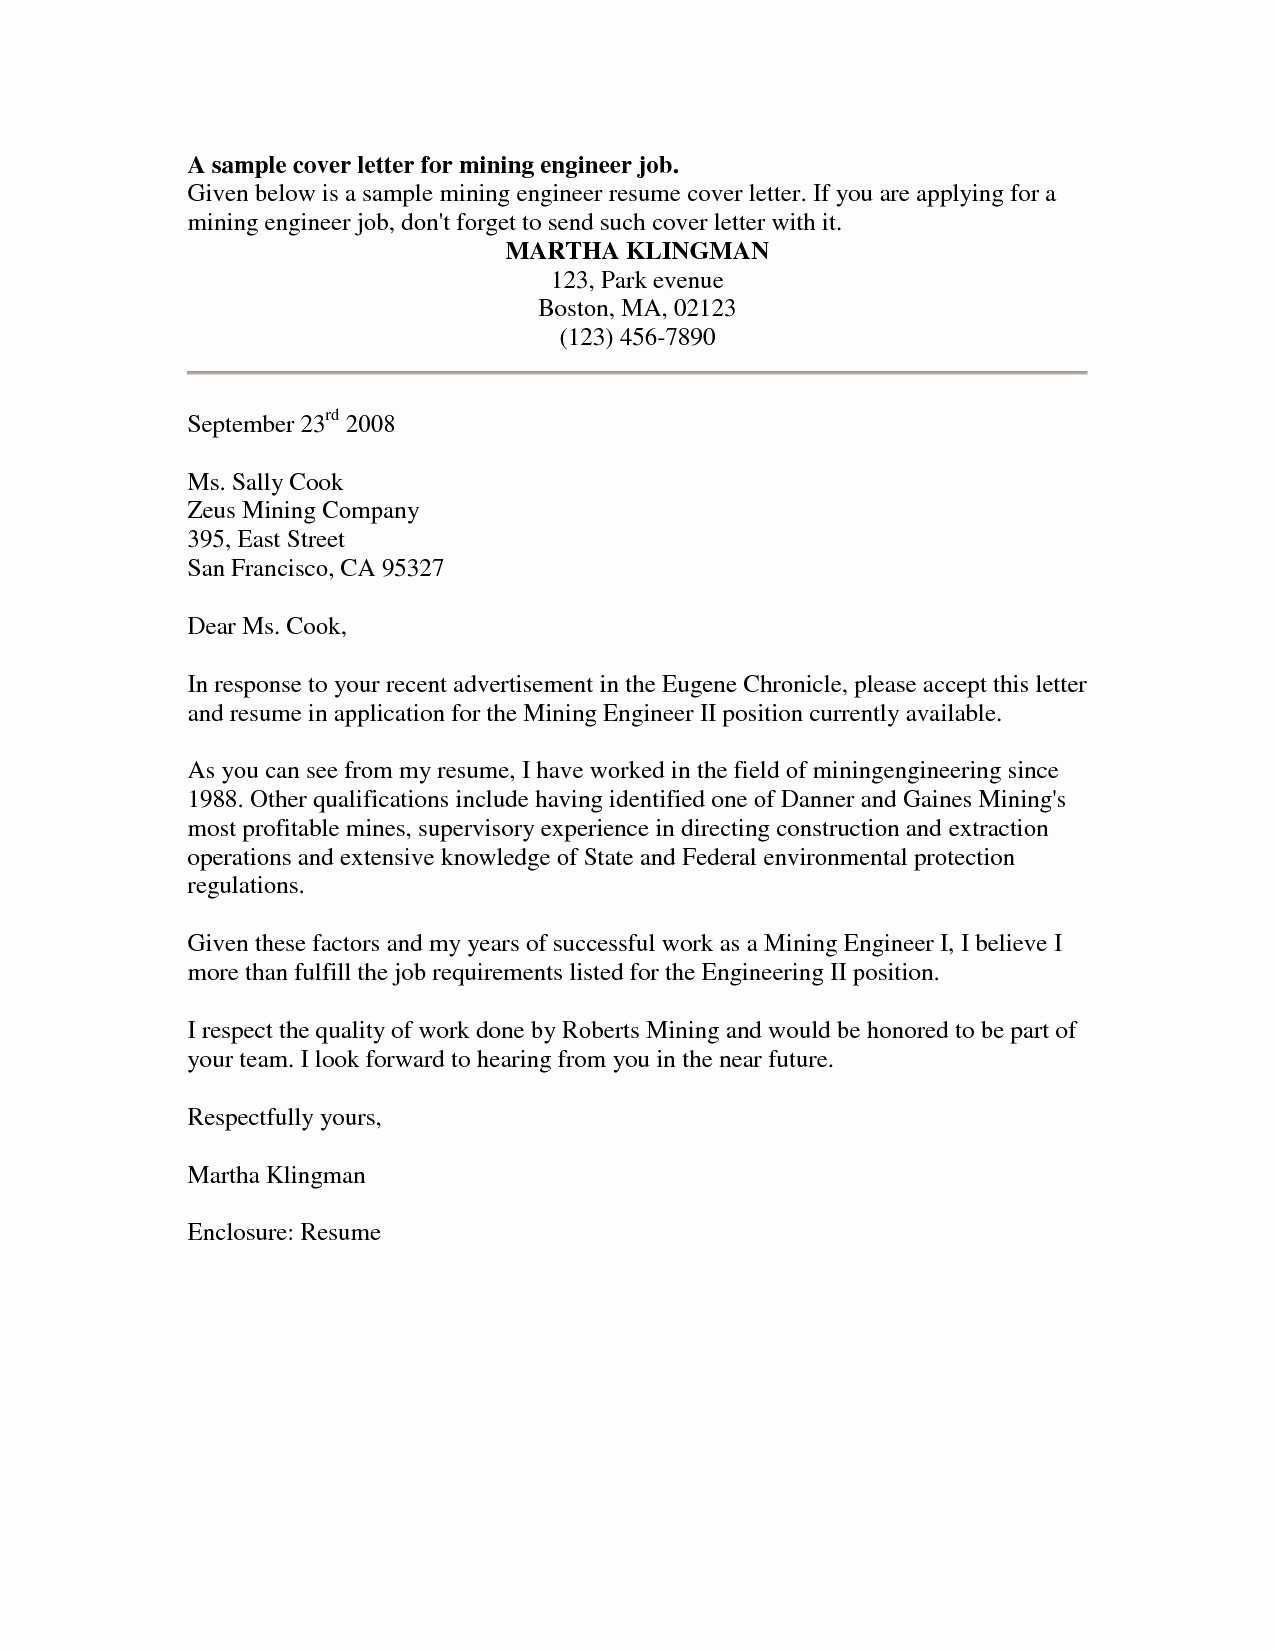 Resume Cover Letter Template Free Awesome Cover Letter Sample Free Sample Job Cover Letter for